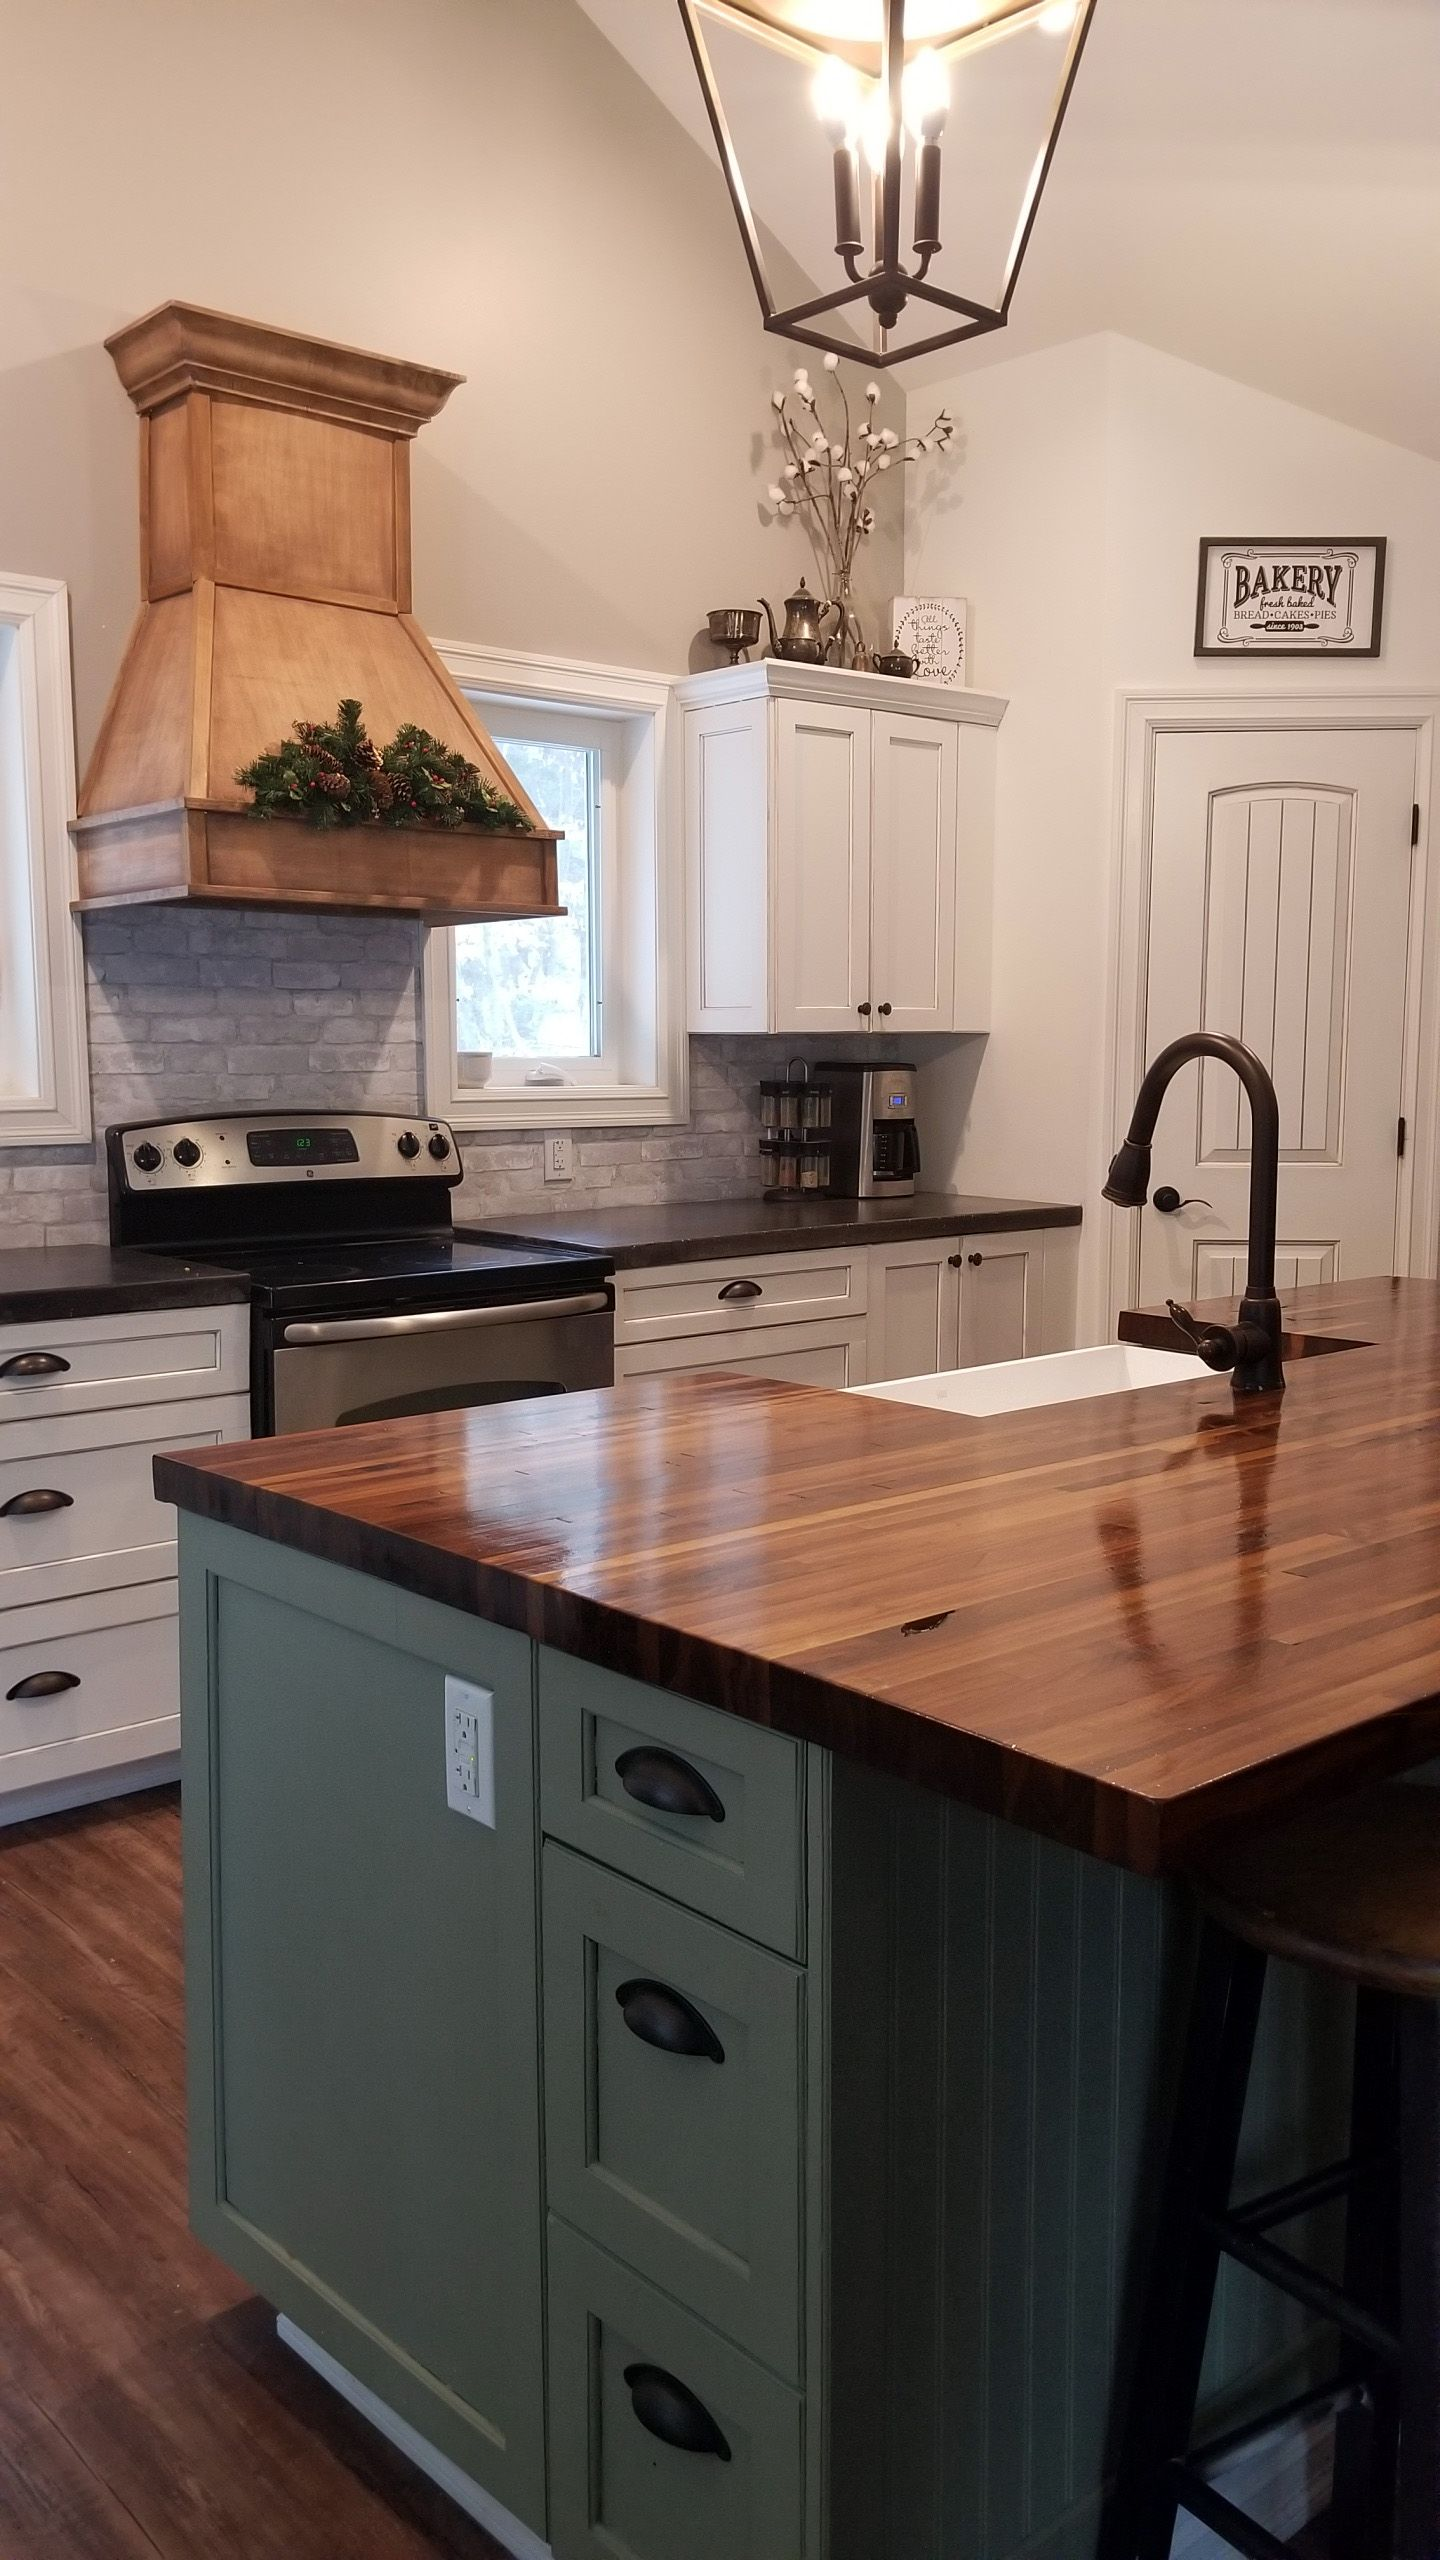 Butcher Block Counter Farmhouse Kitchen Countertops Rustic Kitchen Farmhouse Style Kitchen